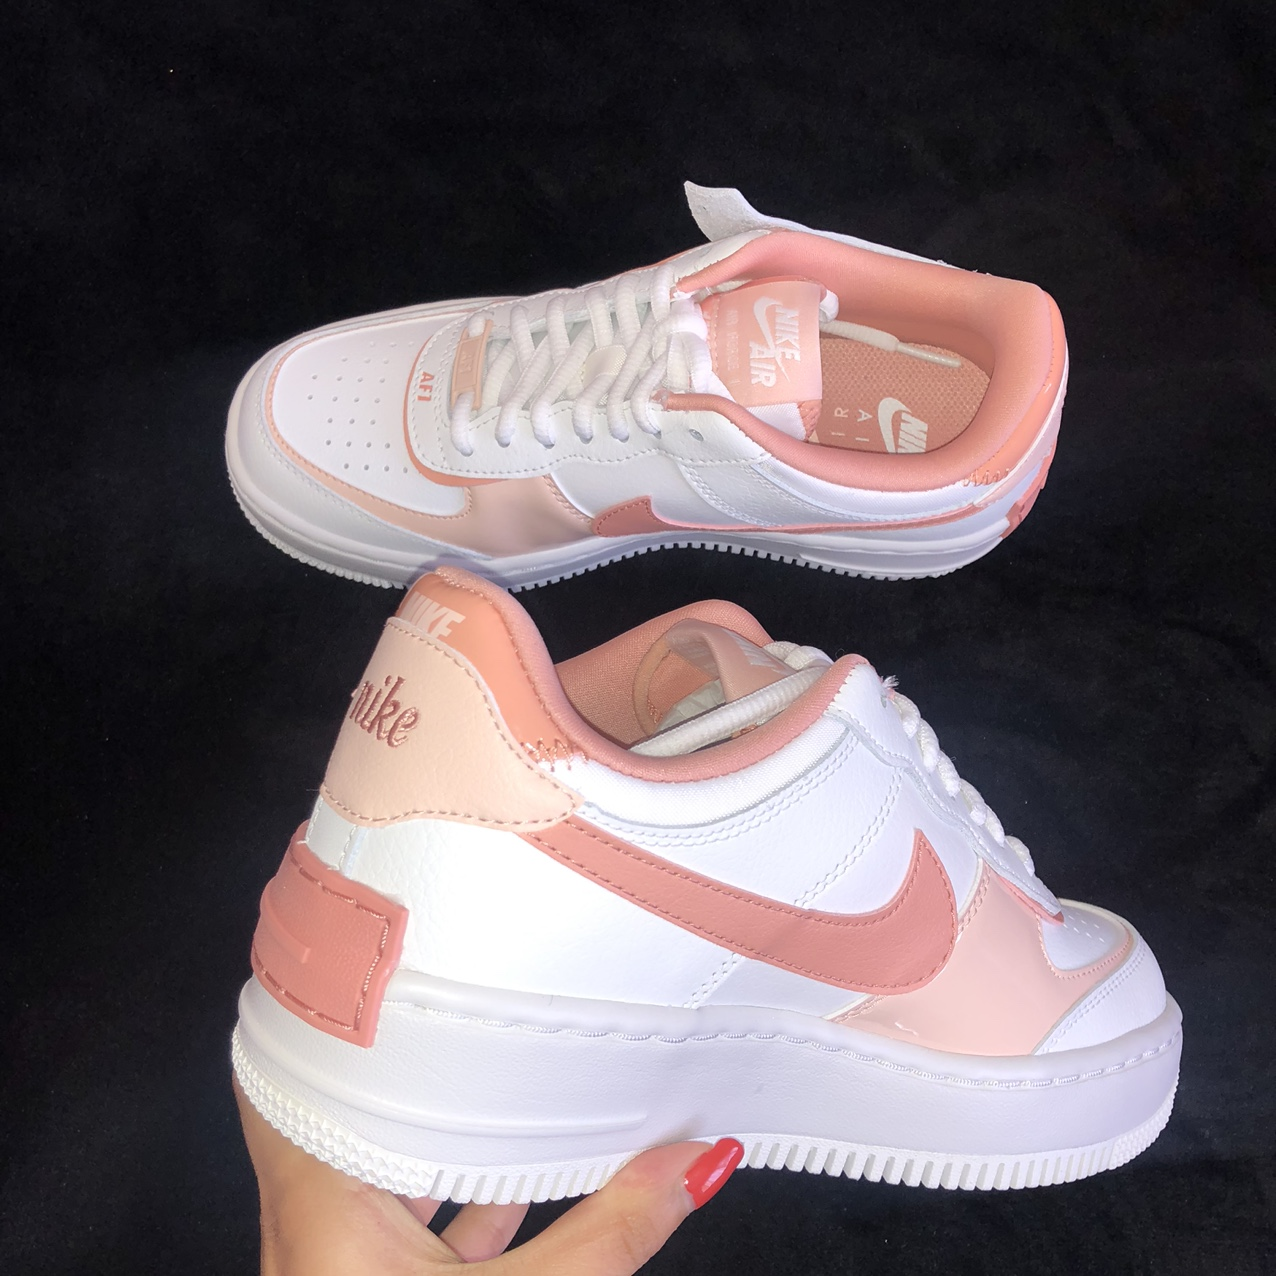 Nike Air Force 1 Shadow Pink Quartz Summit White Depop Crafted with double the swoosh and twice the overlays across the eyestays. nike air force 1 shadow pink quartz